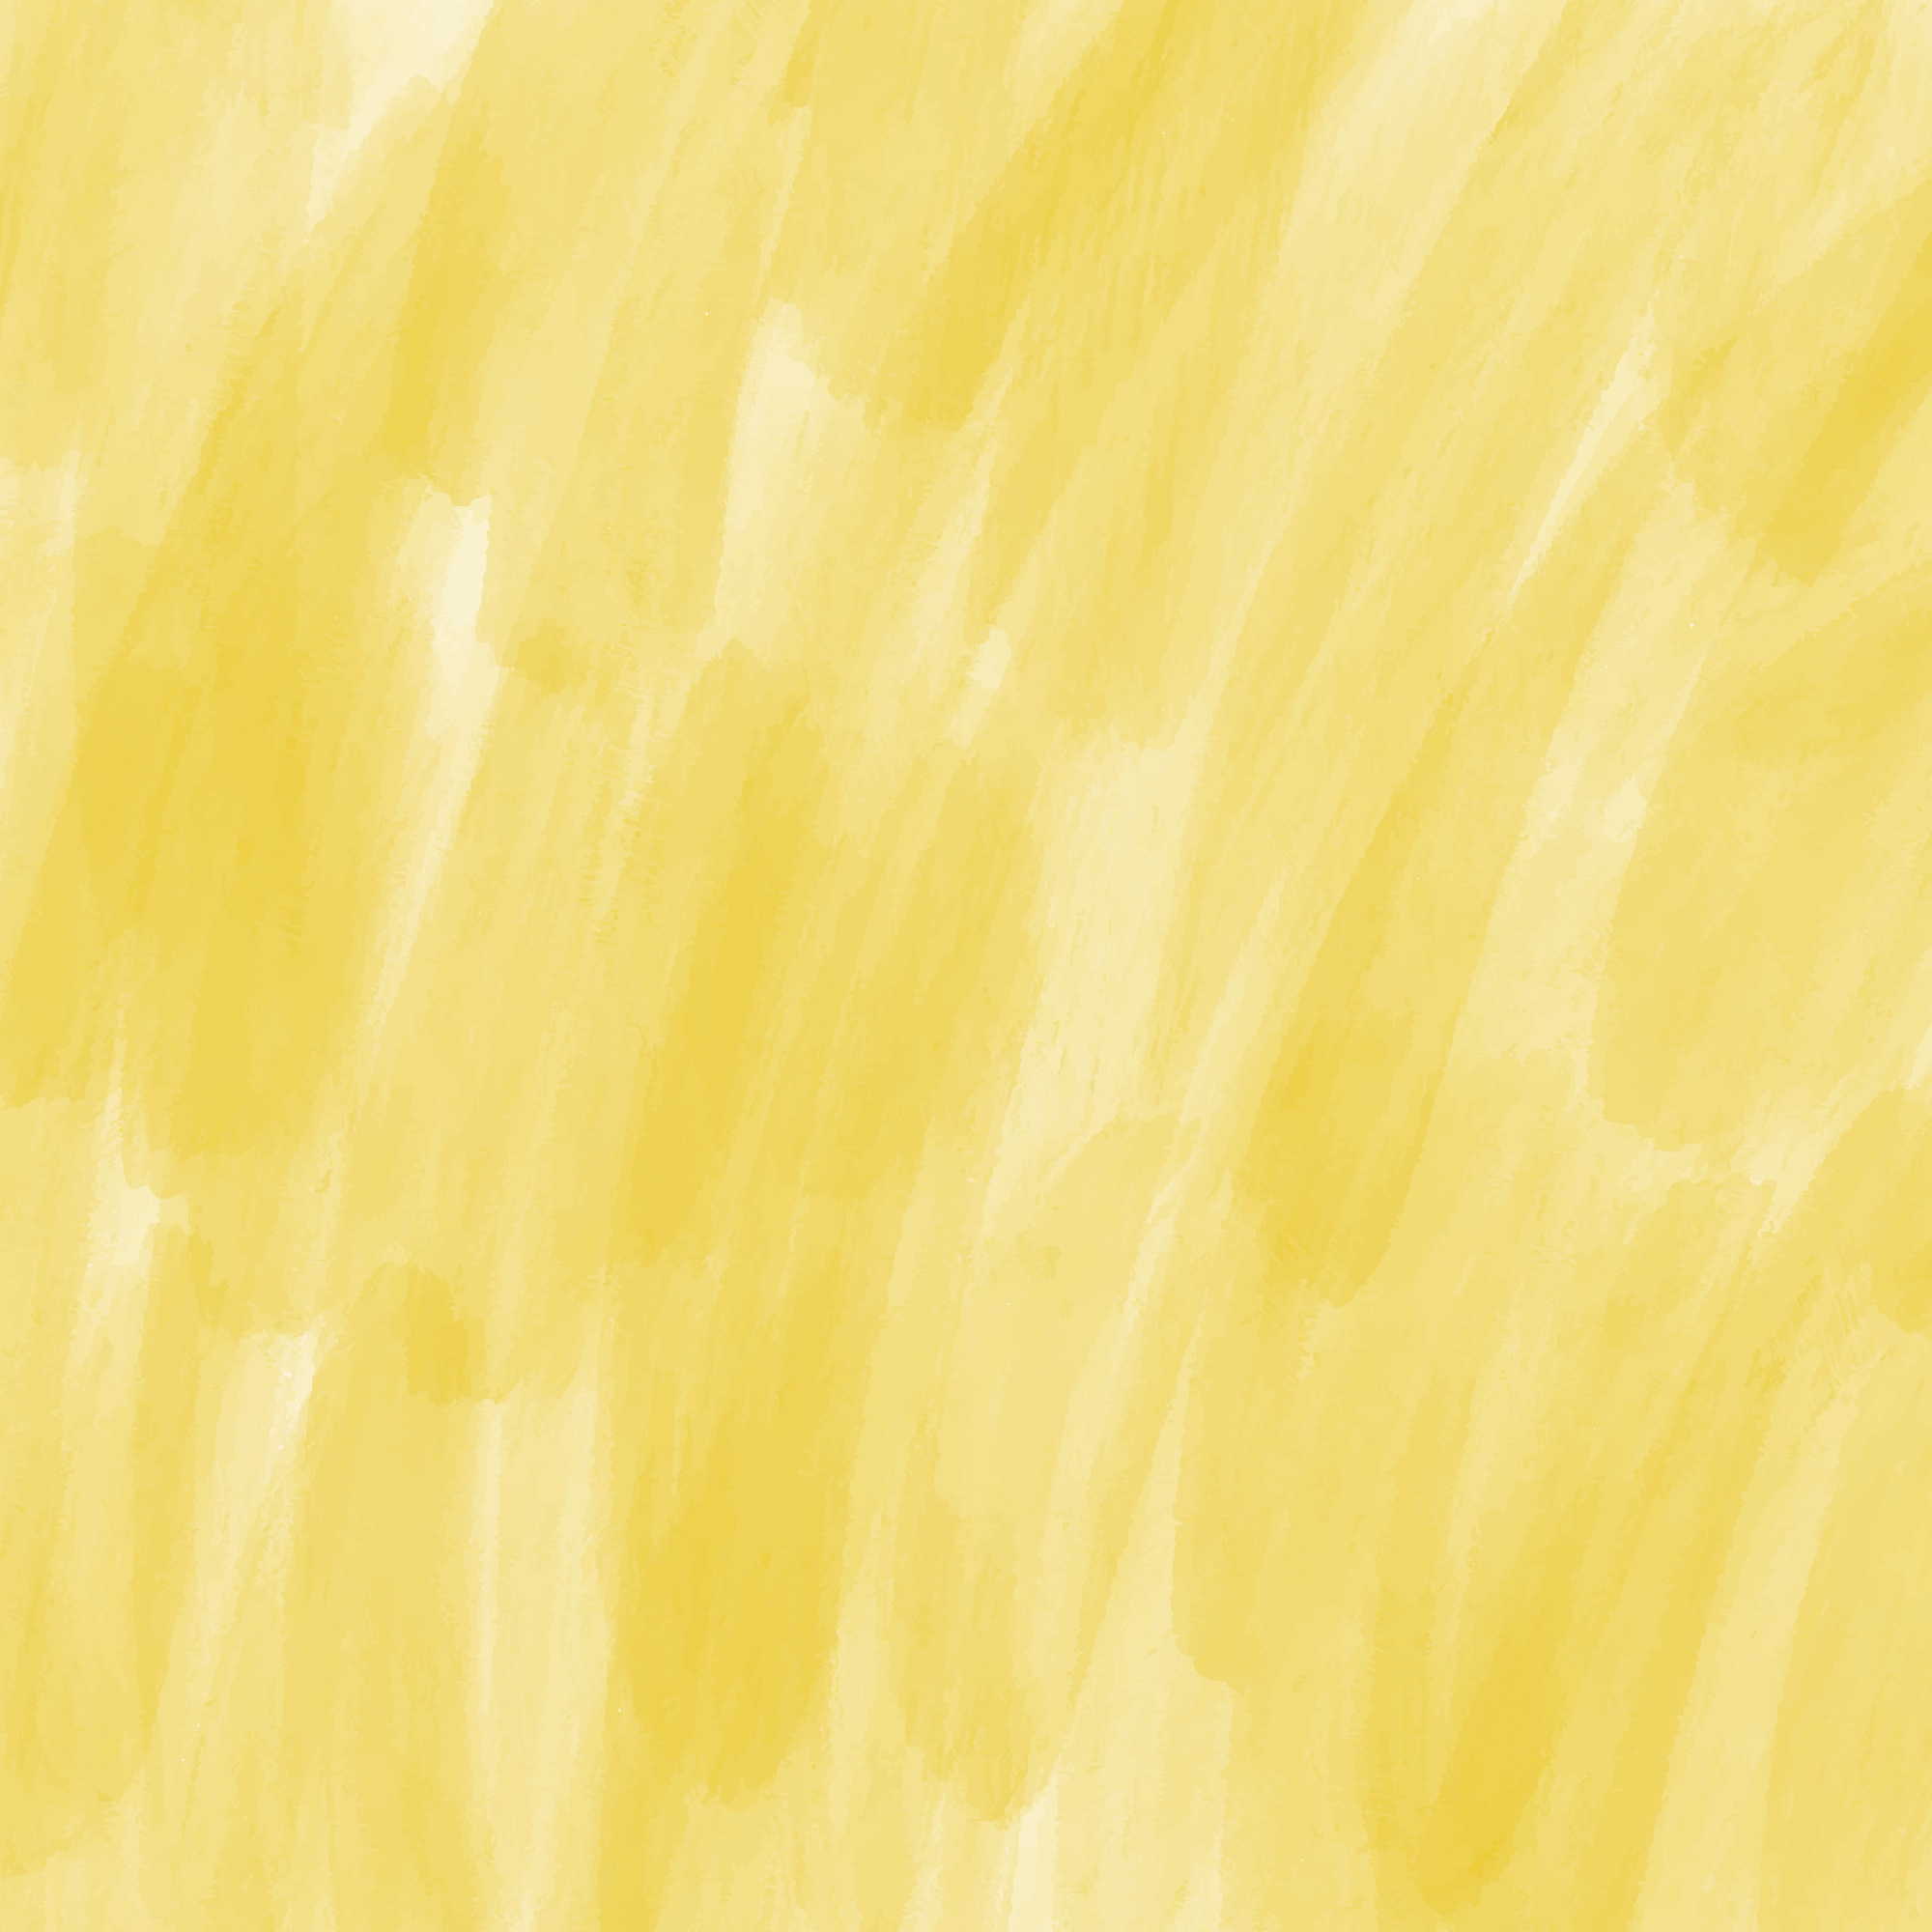 Yellow watercolor background design